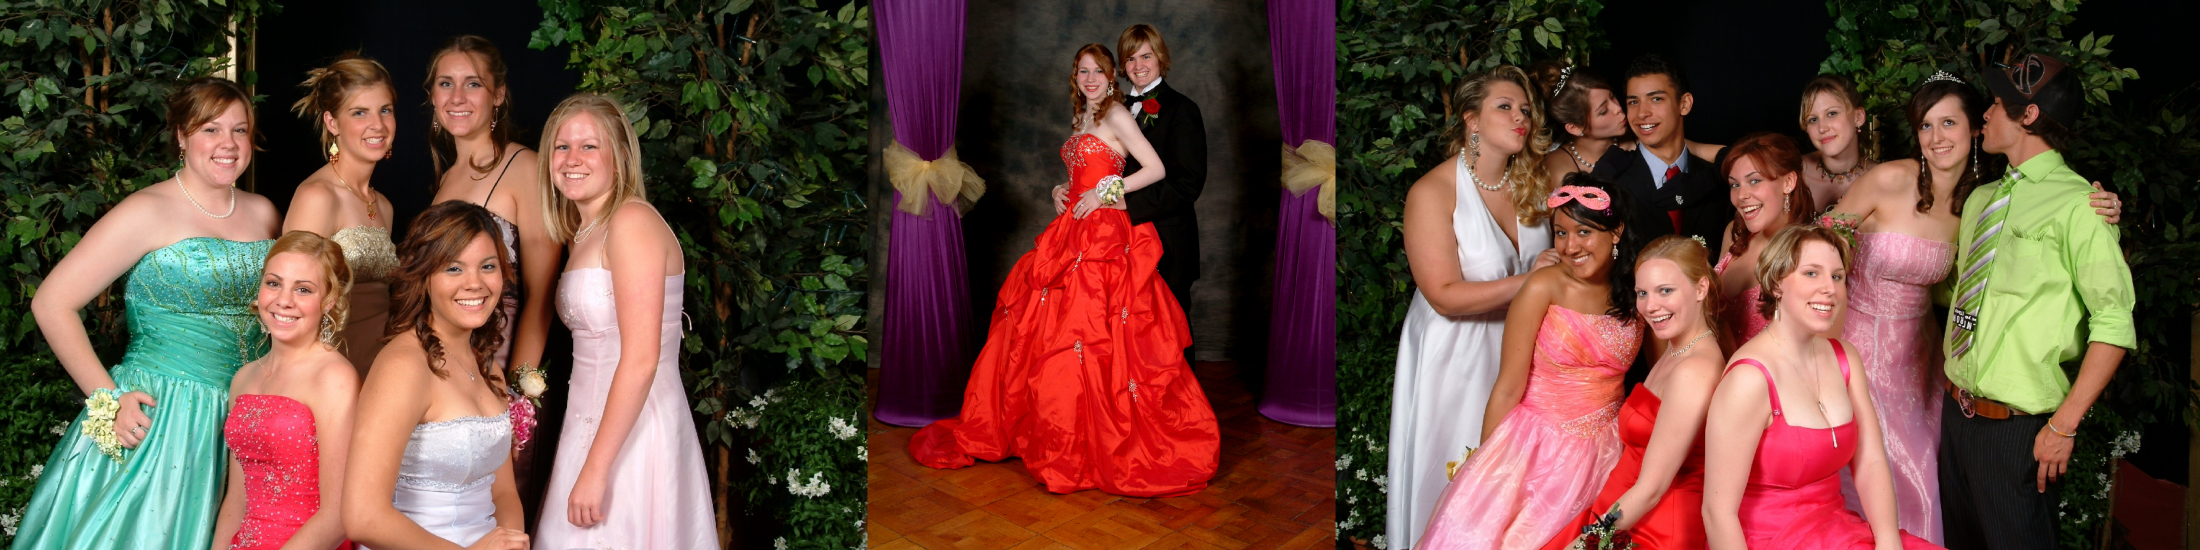 Photographs of prom night at high school